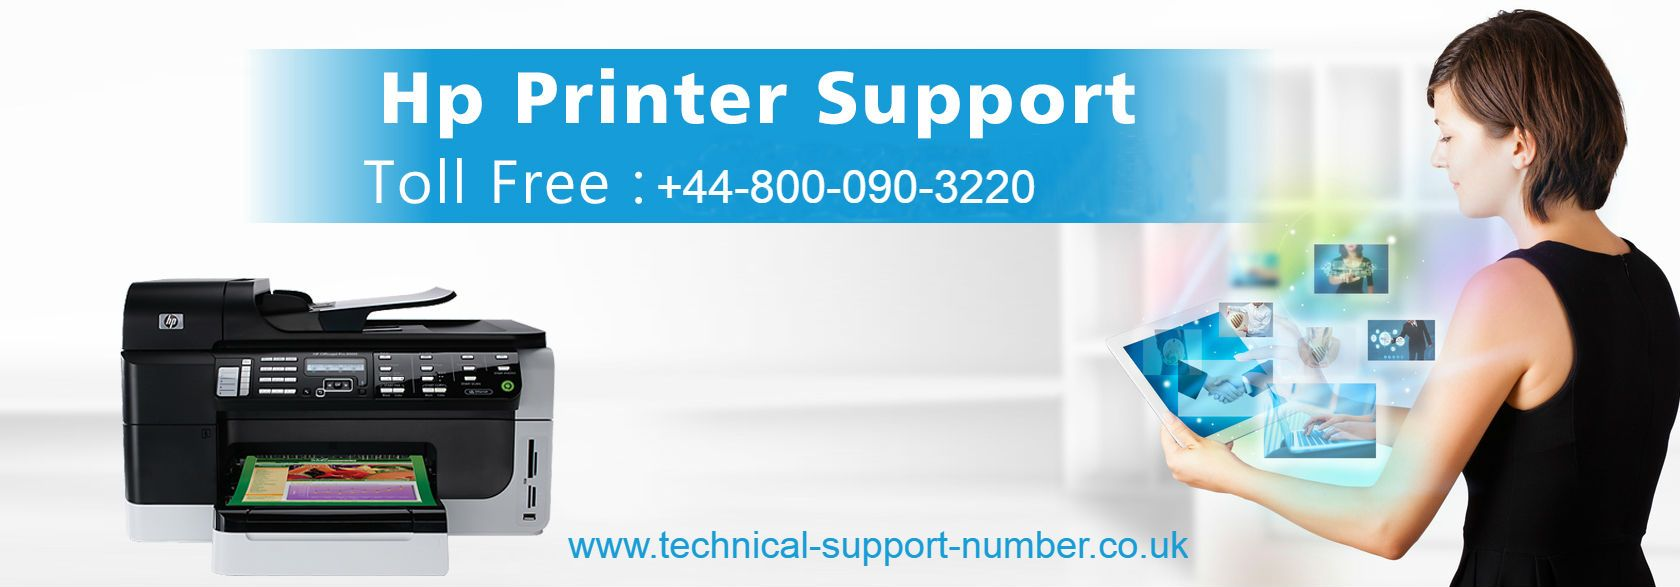 Maximize Your Printouts Quality With This Unique And Easy To Access Hp Printer This Printer Offers Clean And Organized Text Or I Hp Printer Printer Supportive